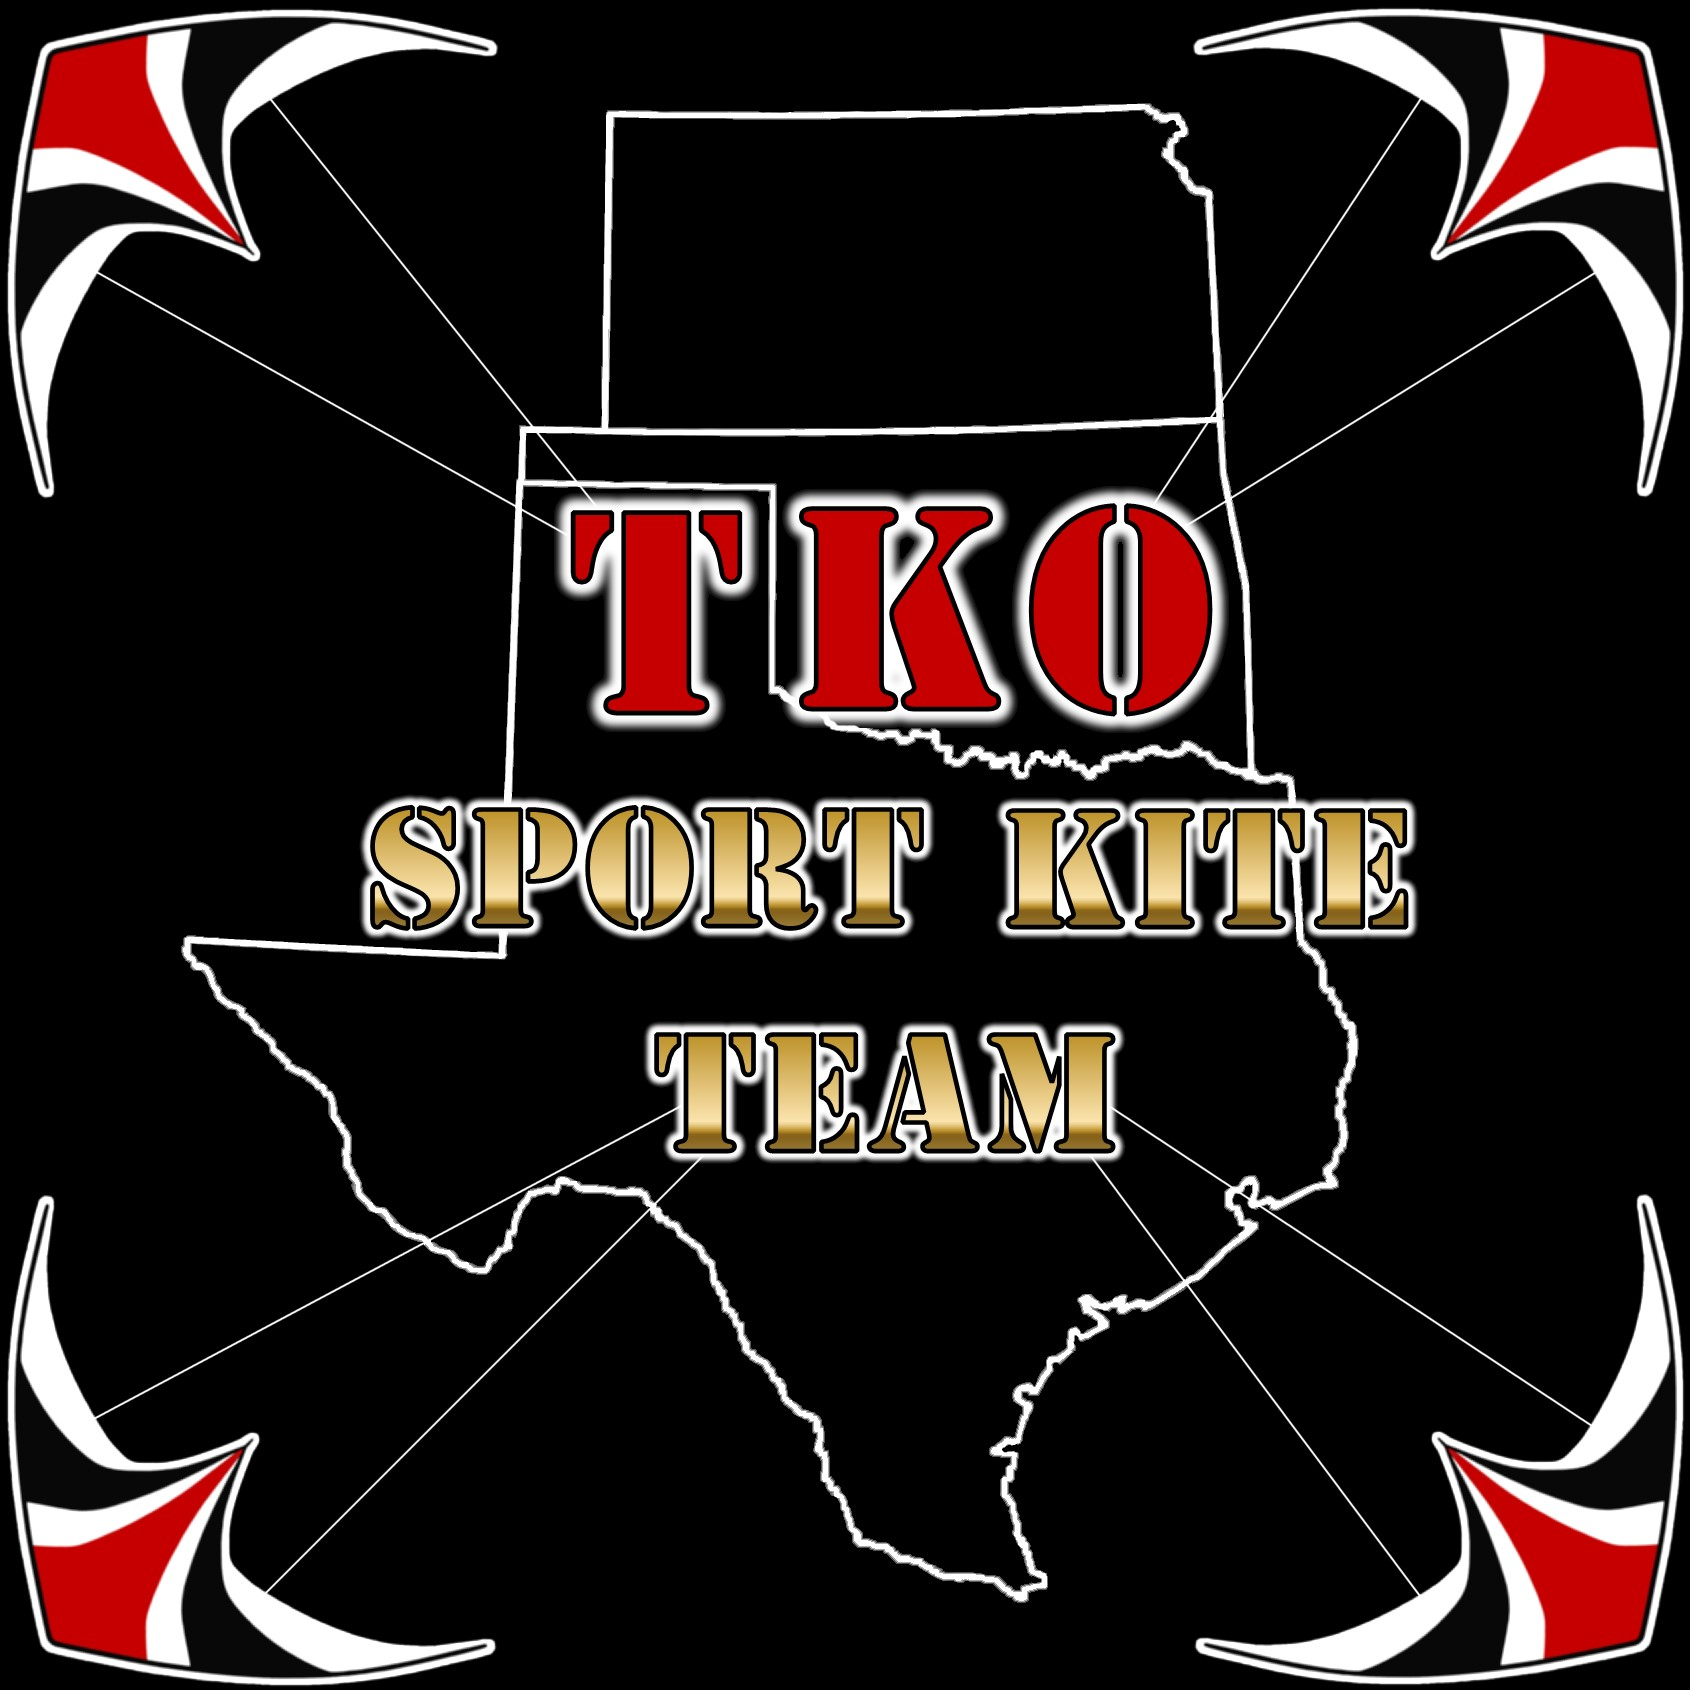 TKO Competition Kite Fliers